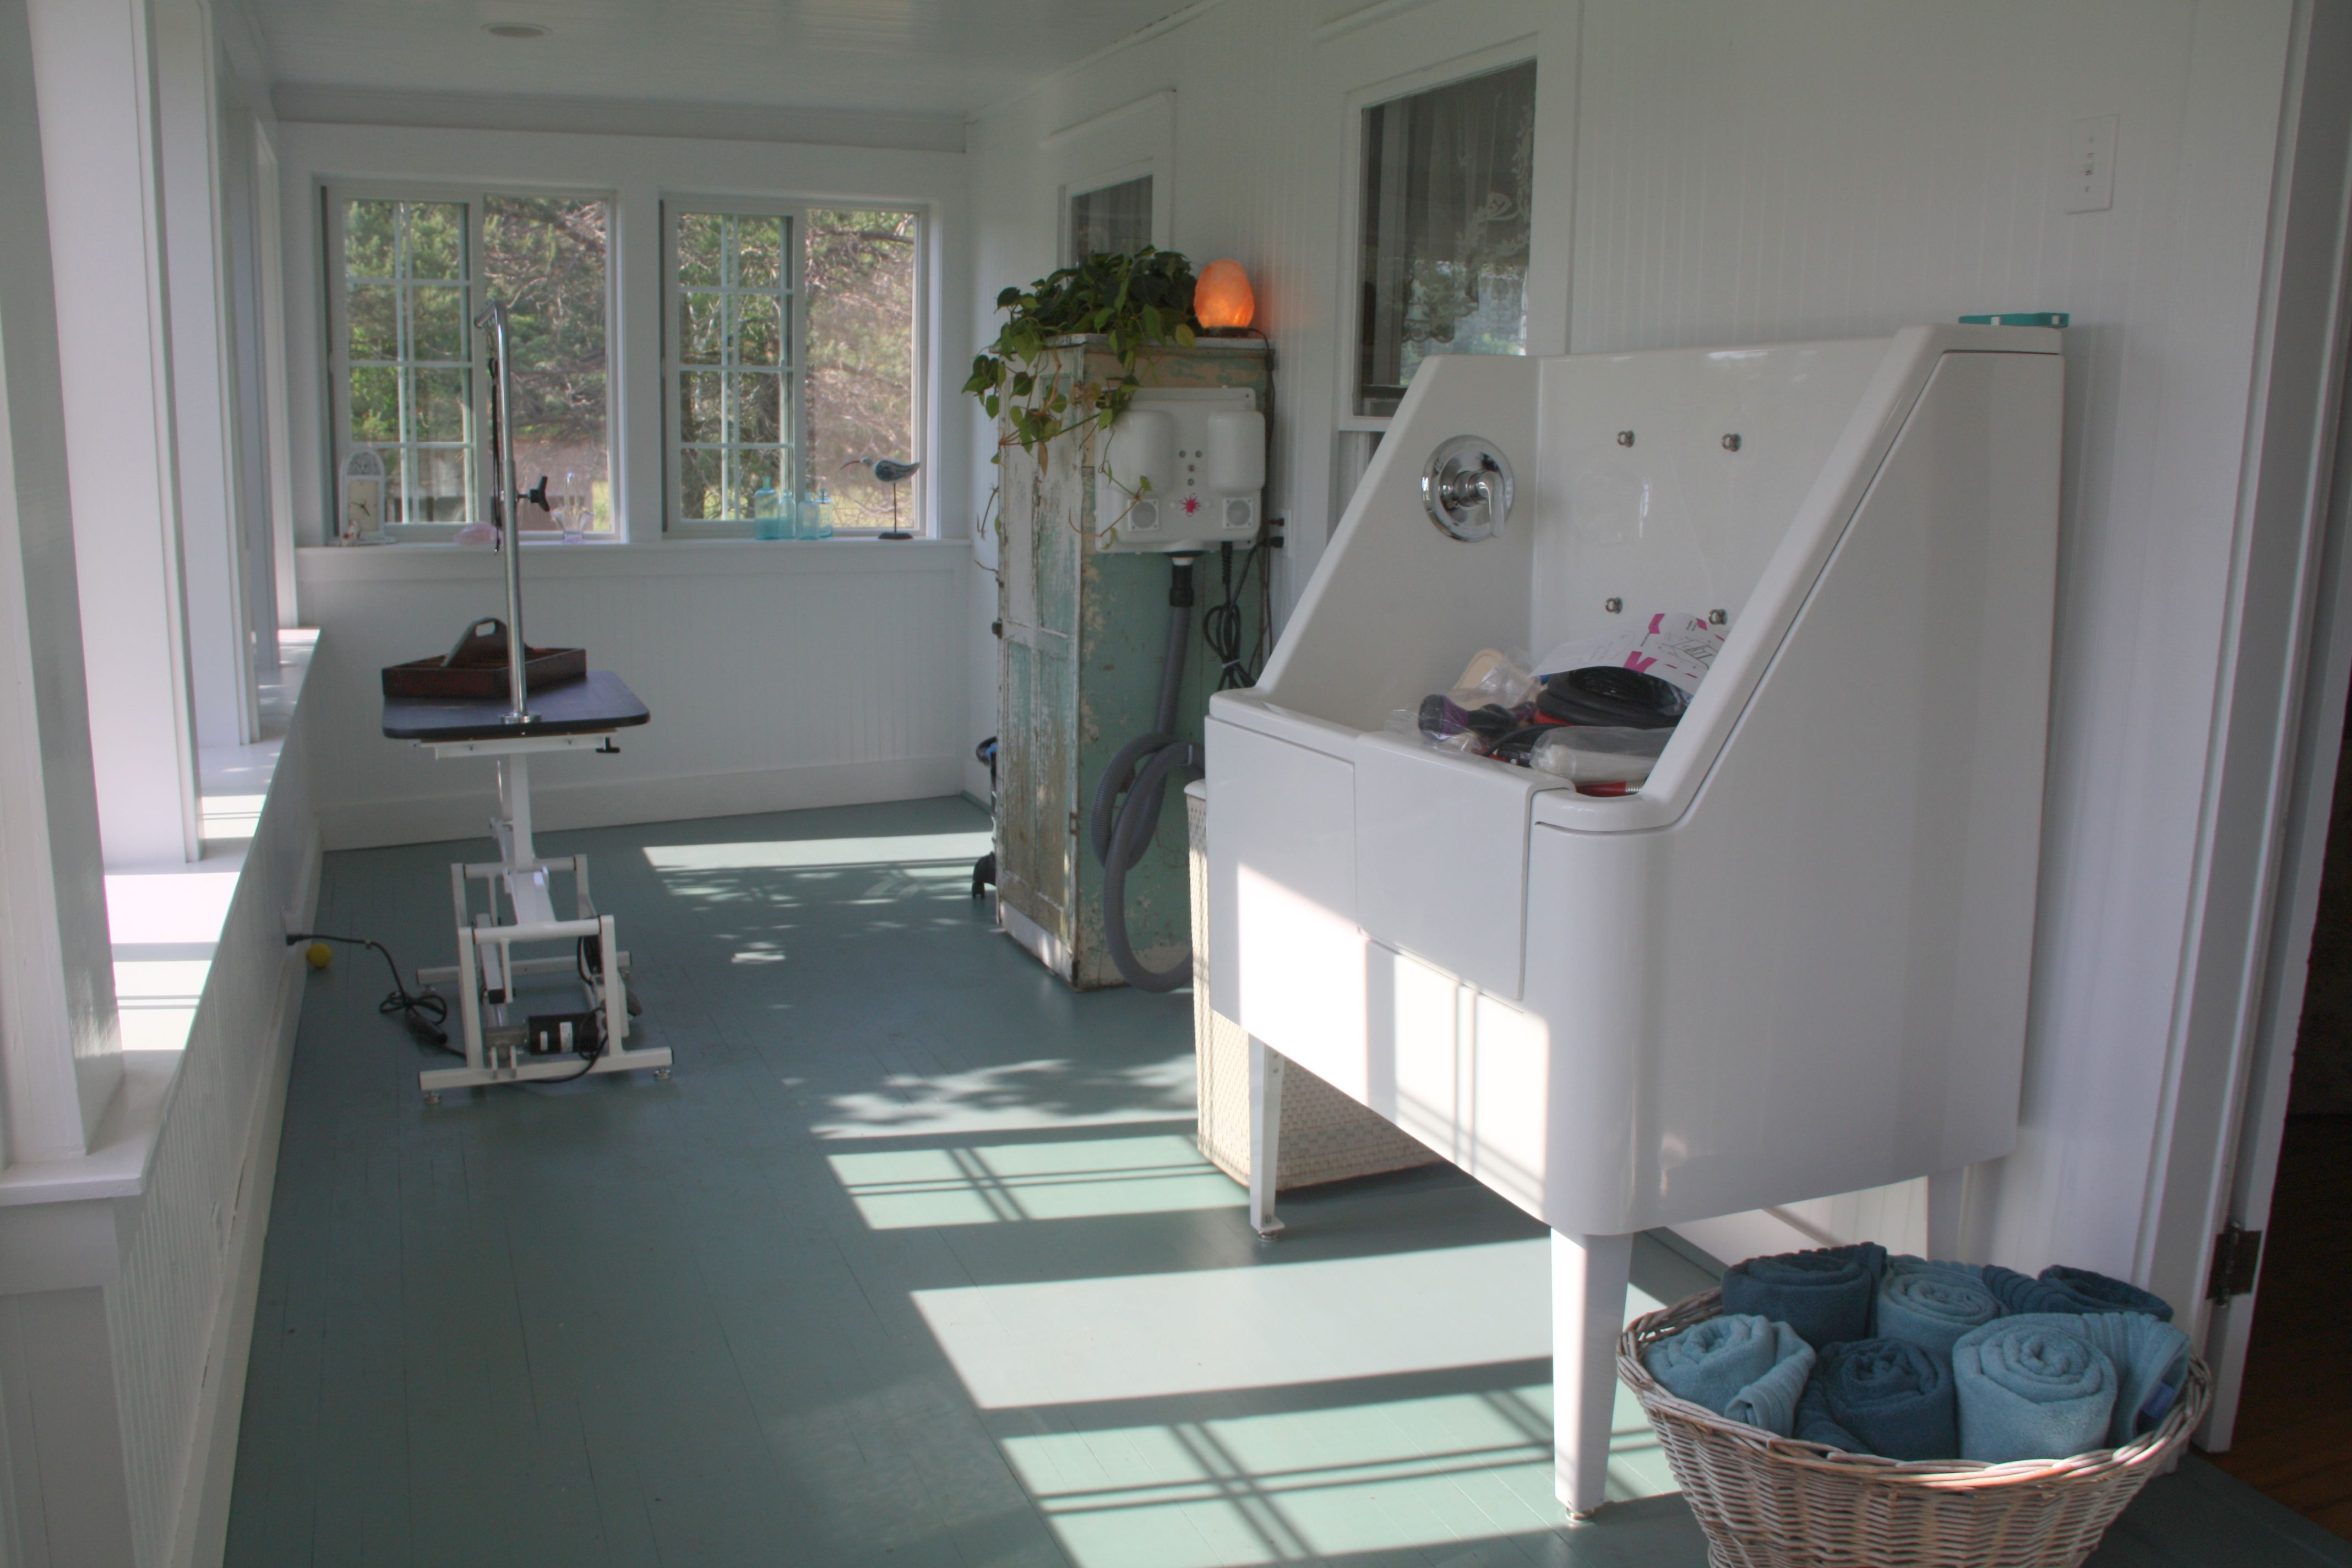 The Other Side Is Where The Magic Happens A Beautiful Bathtub Designed For The Comfort And Safety Of Pe Dog Grooming Salons Pet Grooming Salon Grooming Salon